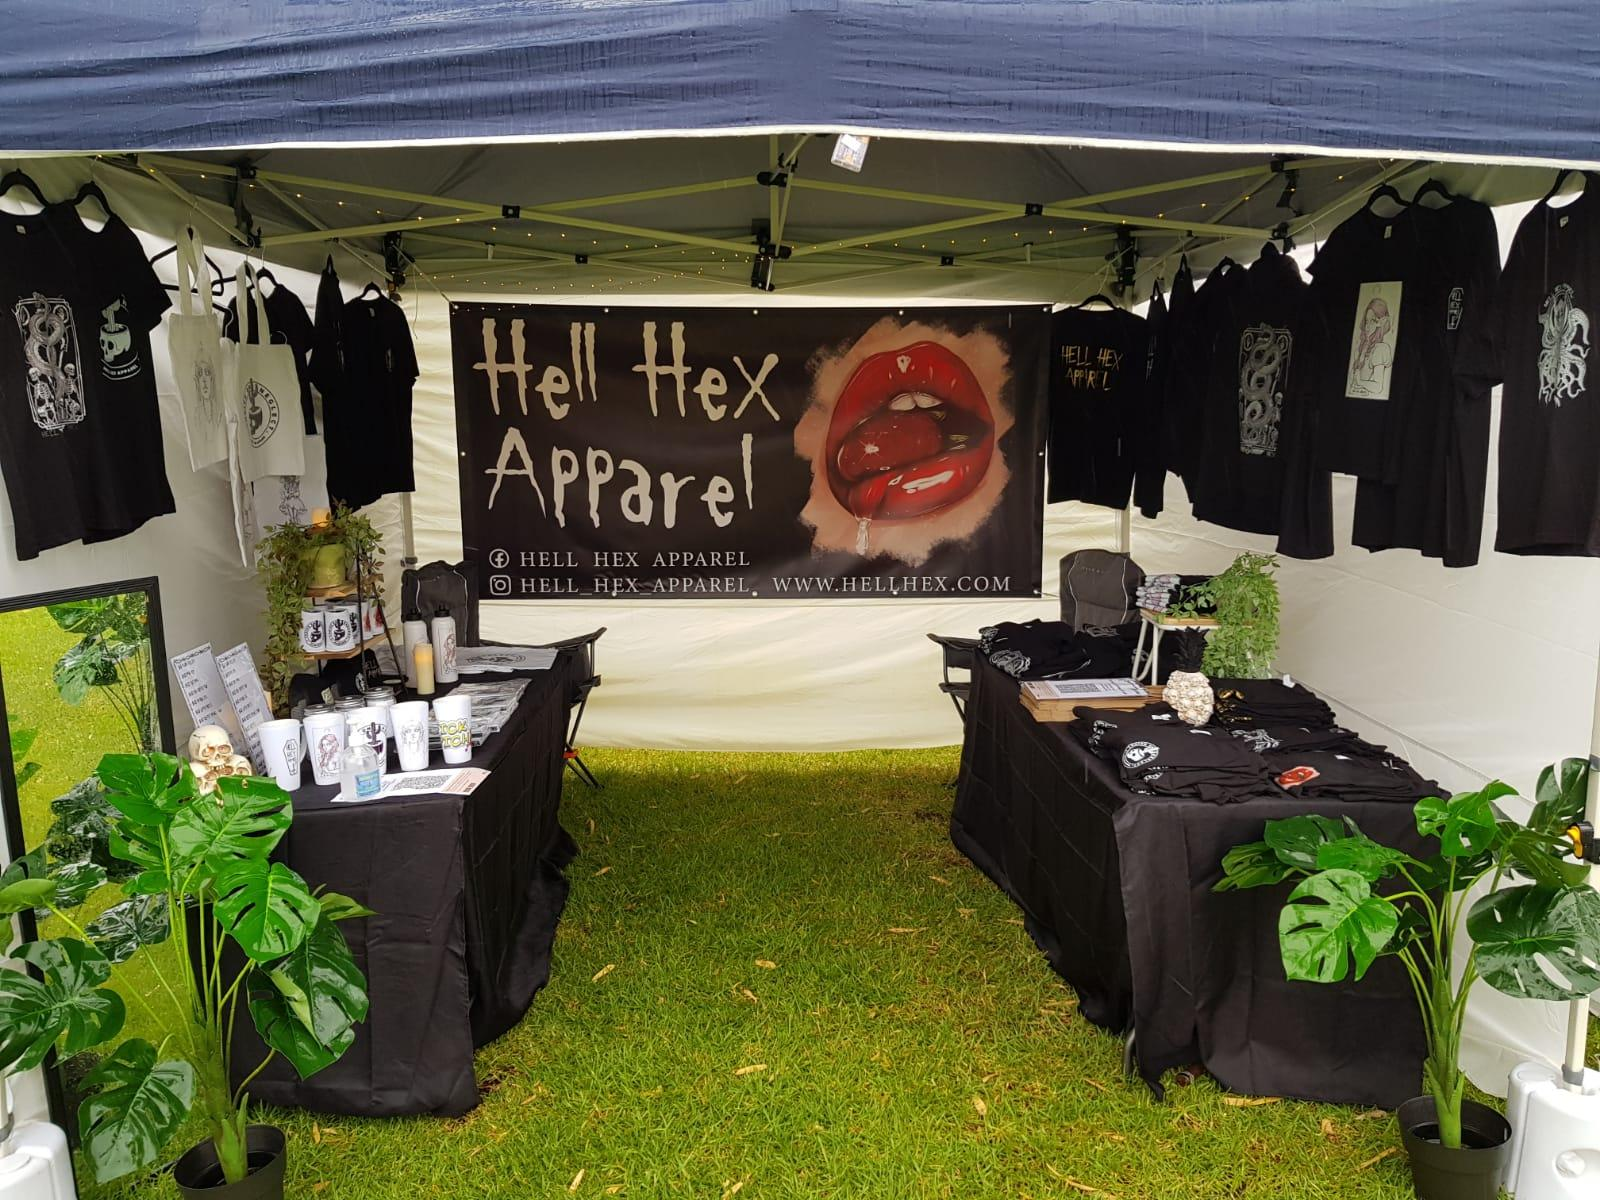 Hell Hex apparel booth